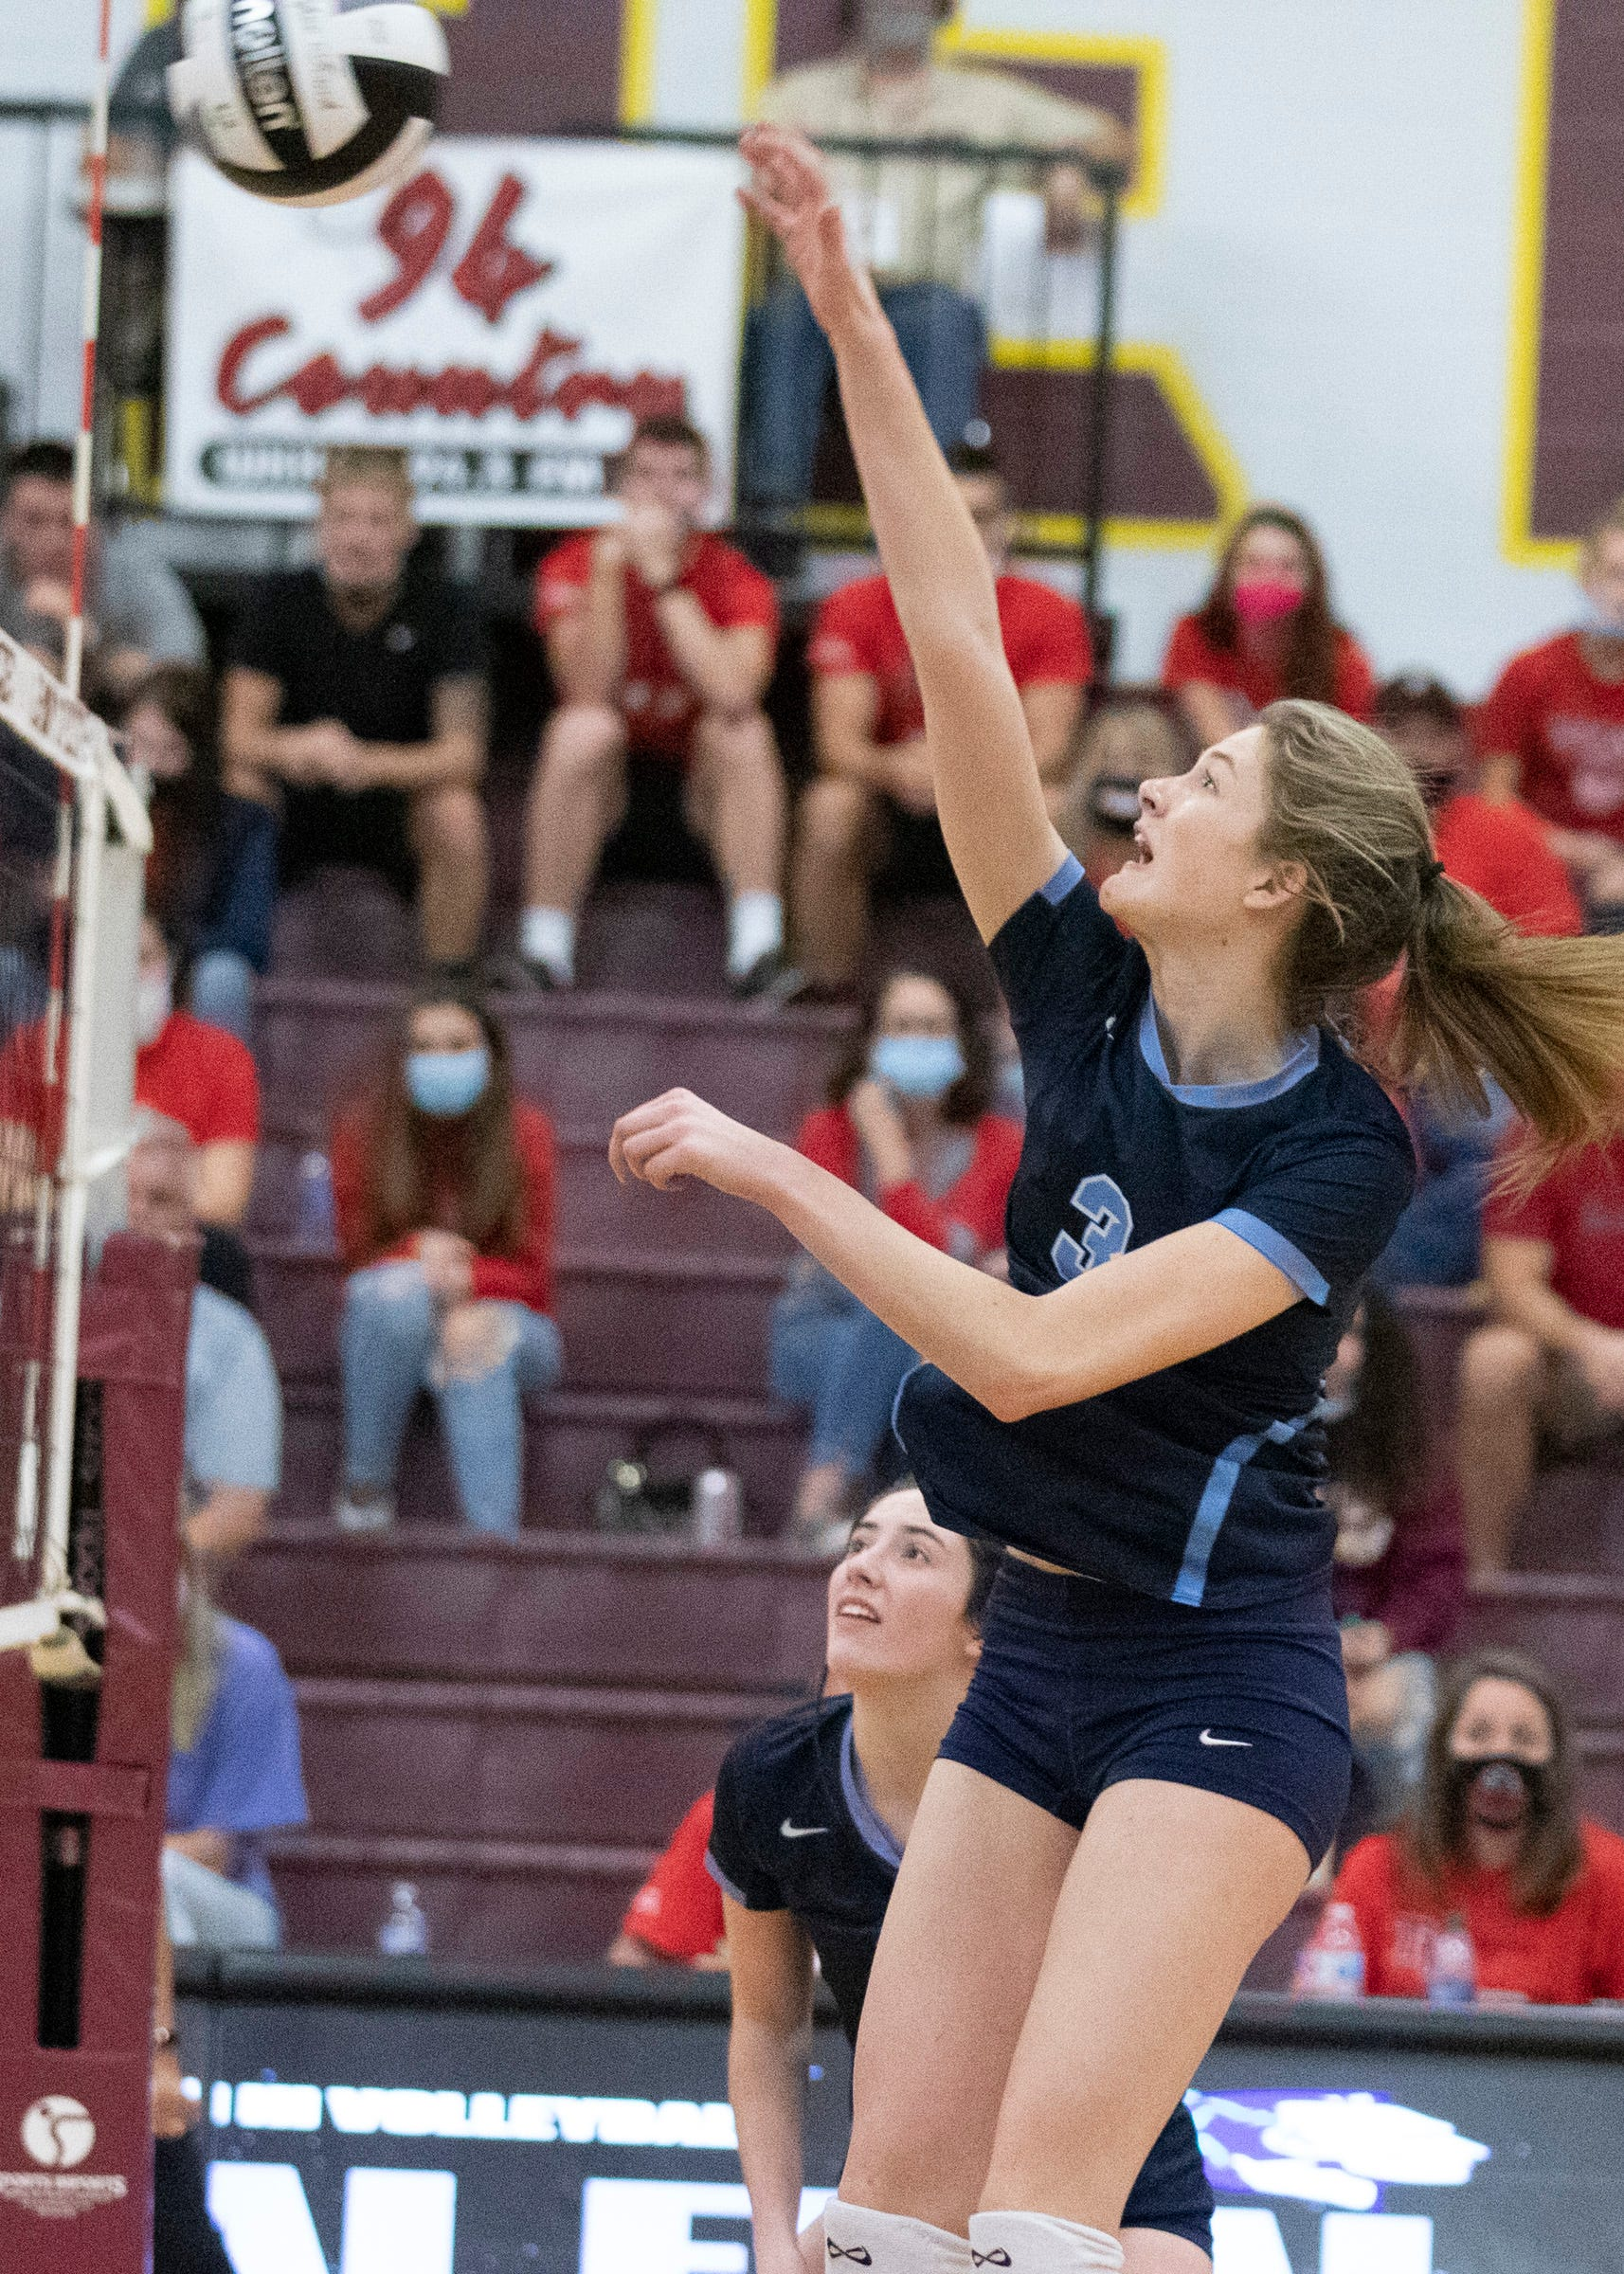 Jenna Martin returning a ball during the Adena girls volleyball team's loss to Tuscarawas Valley 3-2 in a Division III regional final at Berne Union High School in Sugar Grove, Ohio.